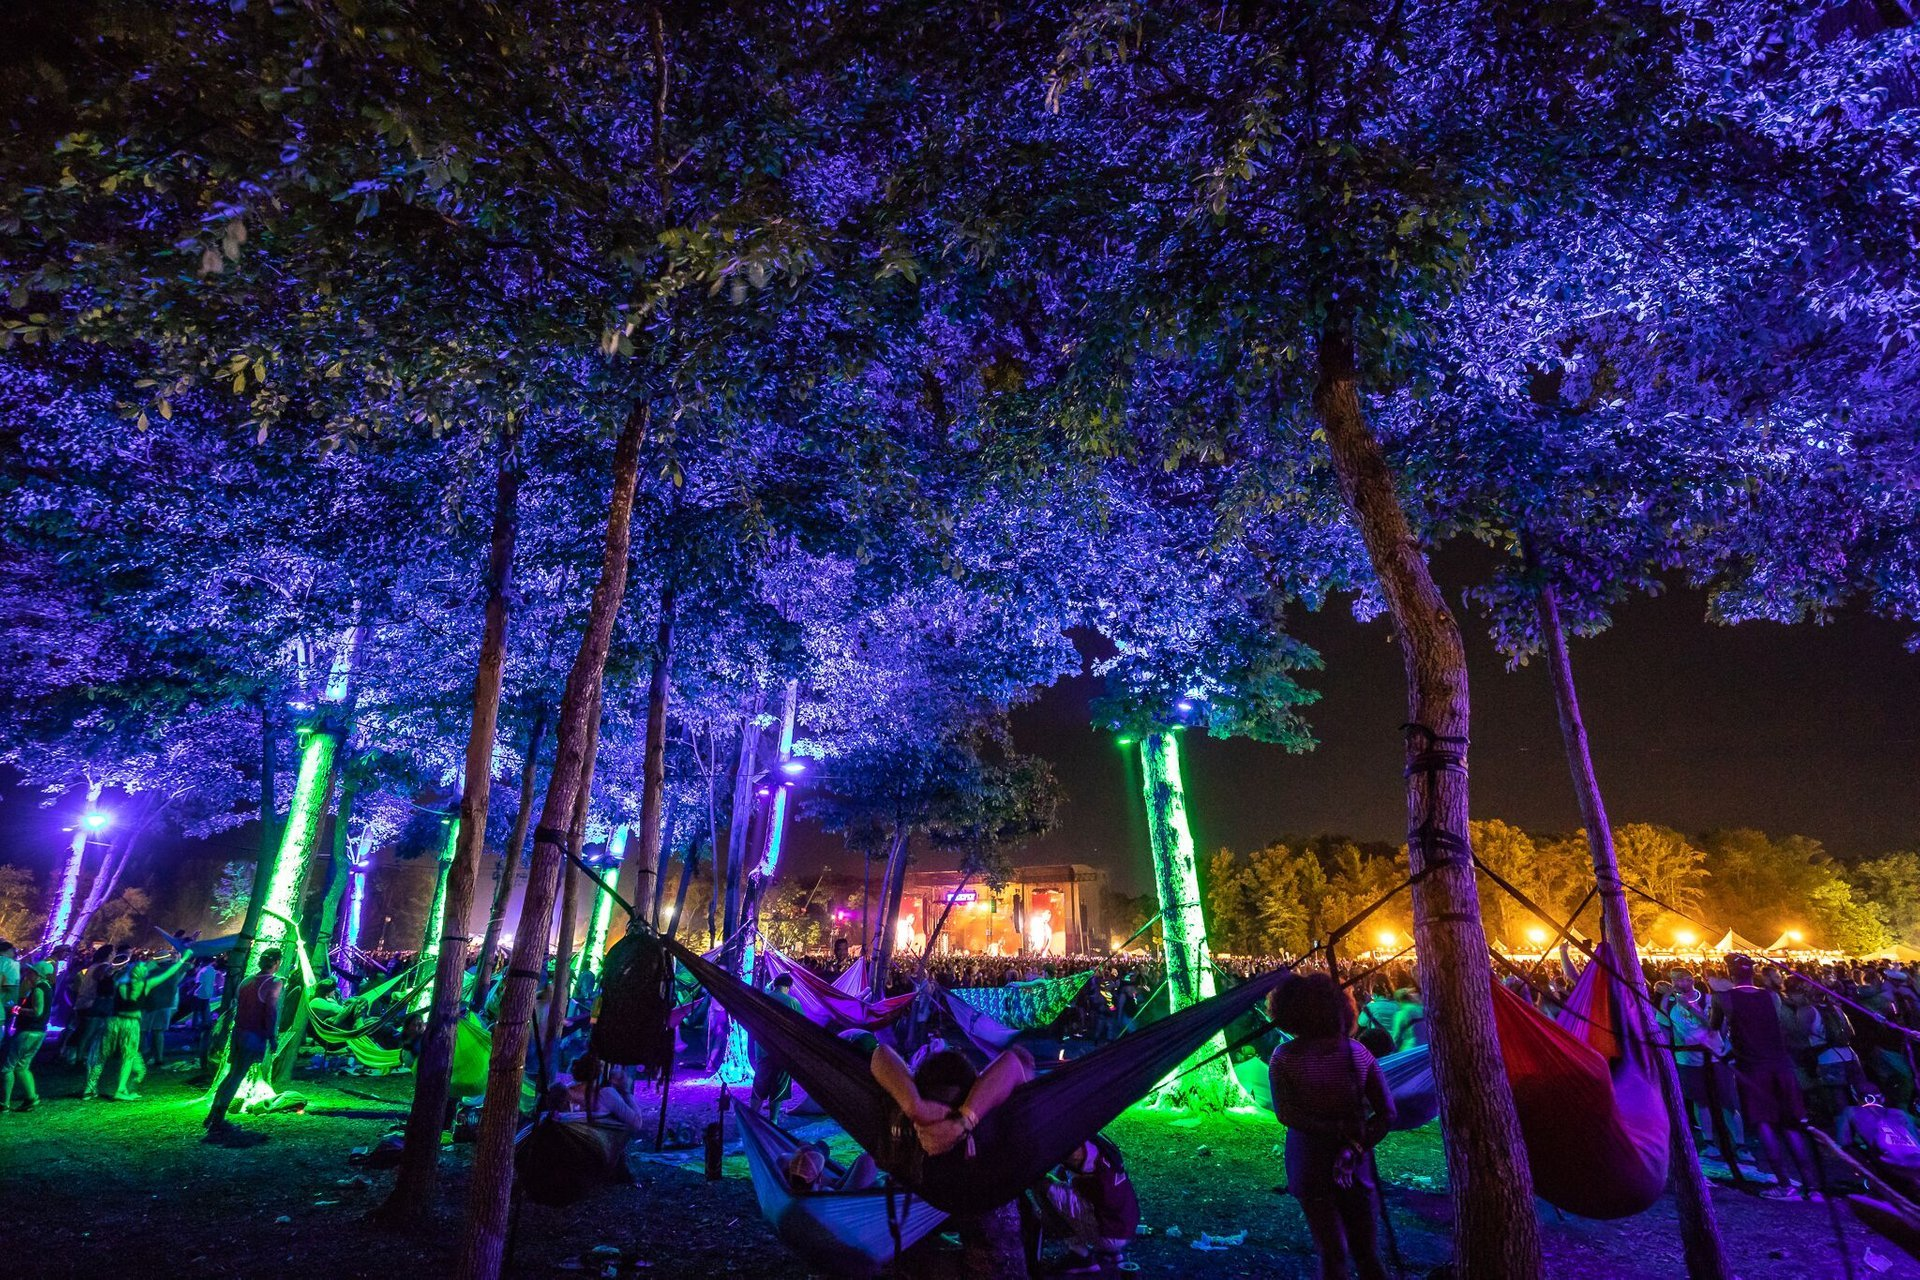 Best time to see Firefly Music Festival 2020